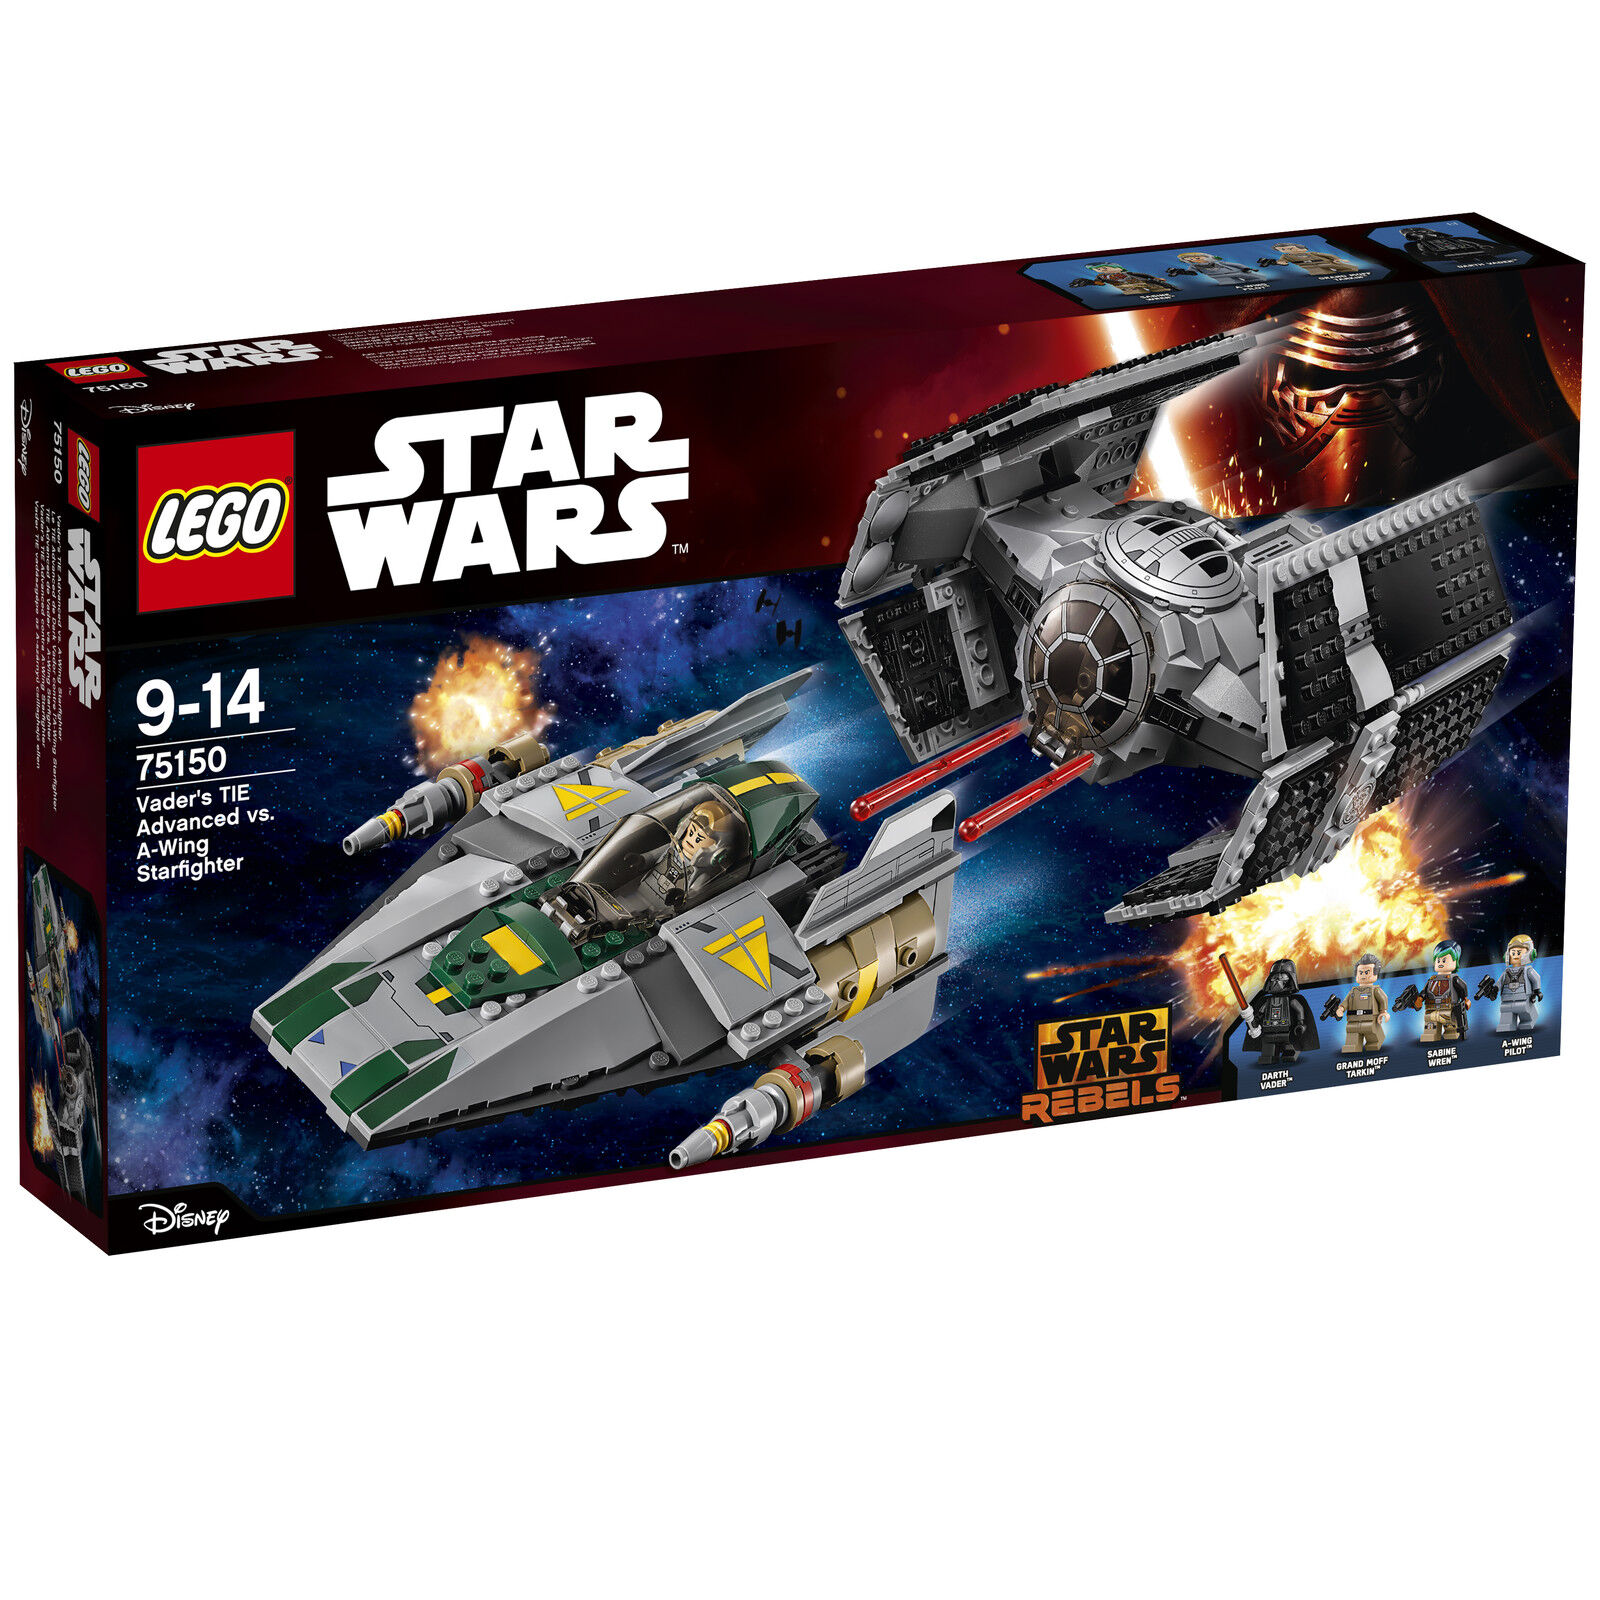 Lego ® Star Wars ™ 75150 Vader's  cravate Advanced vs. a-Wing Starfighter nouveau nouveau  vente en ligne